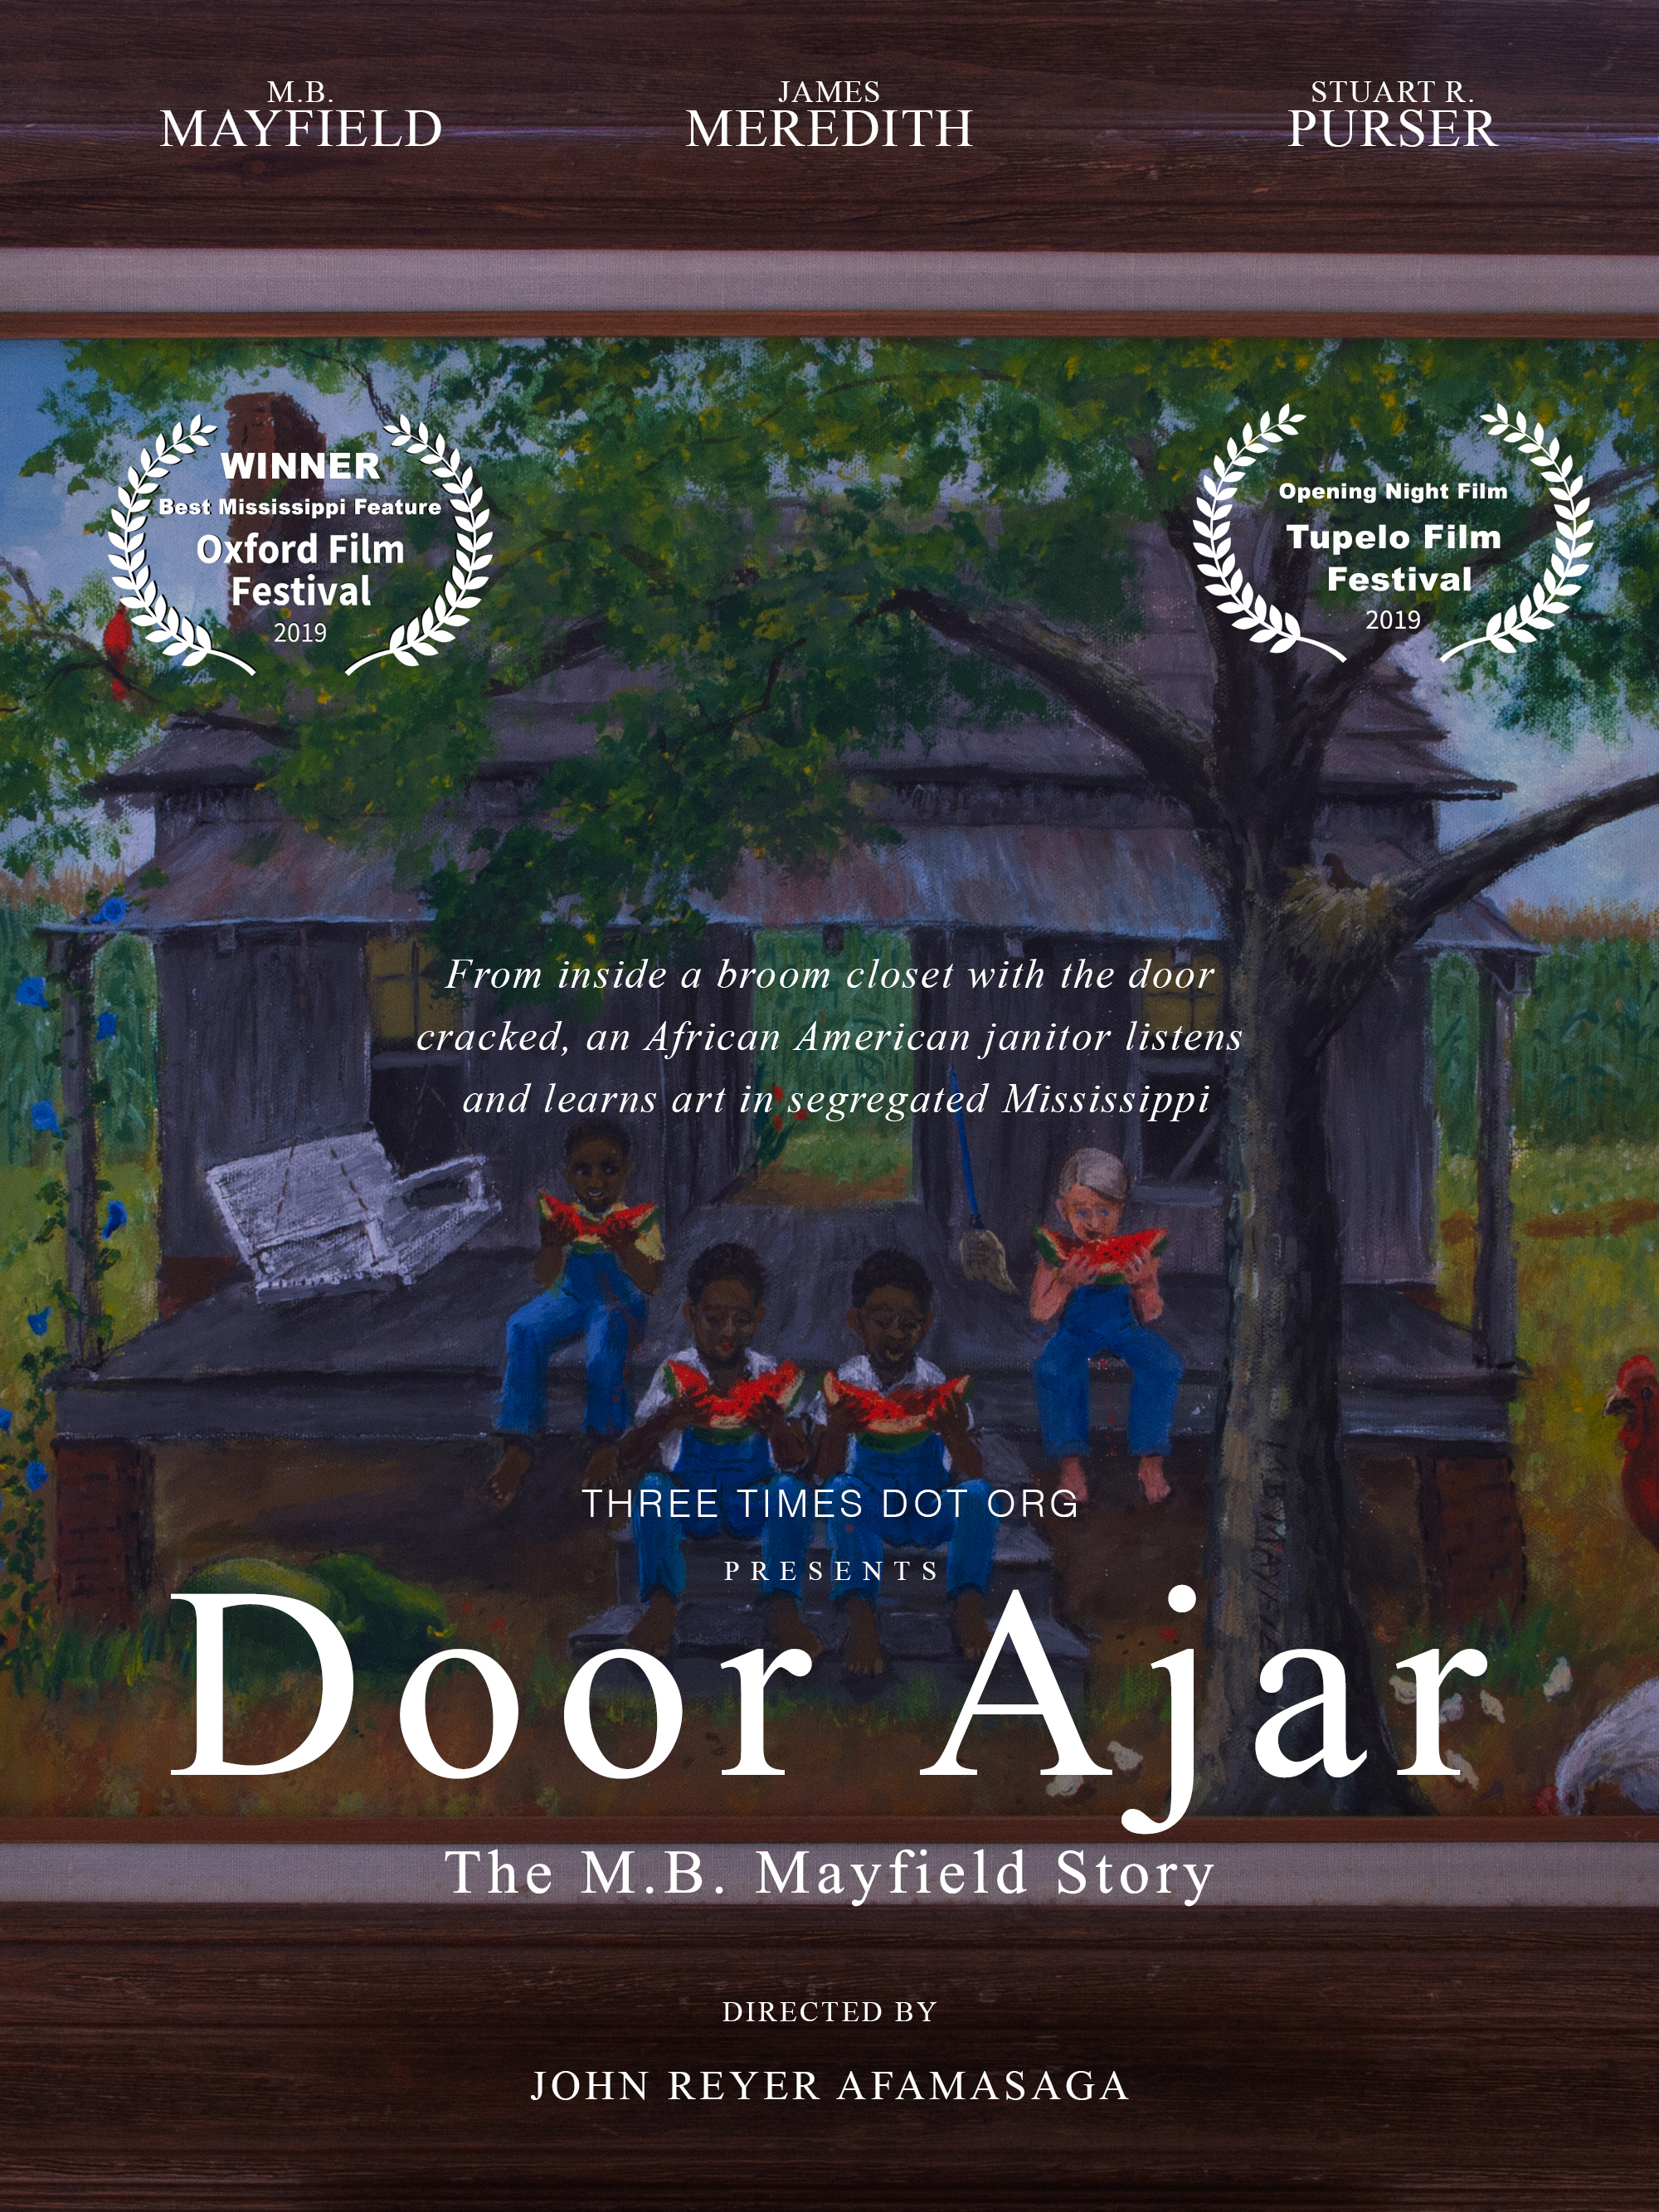 Door Ajar - The M.B. Mayfield Story